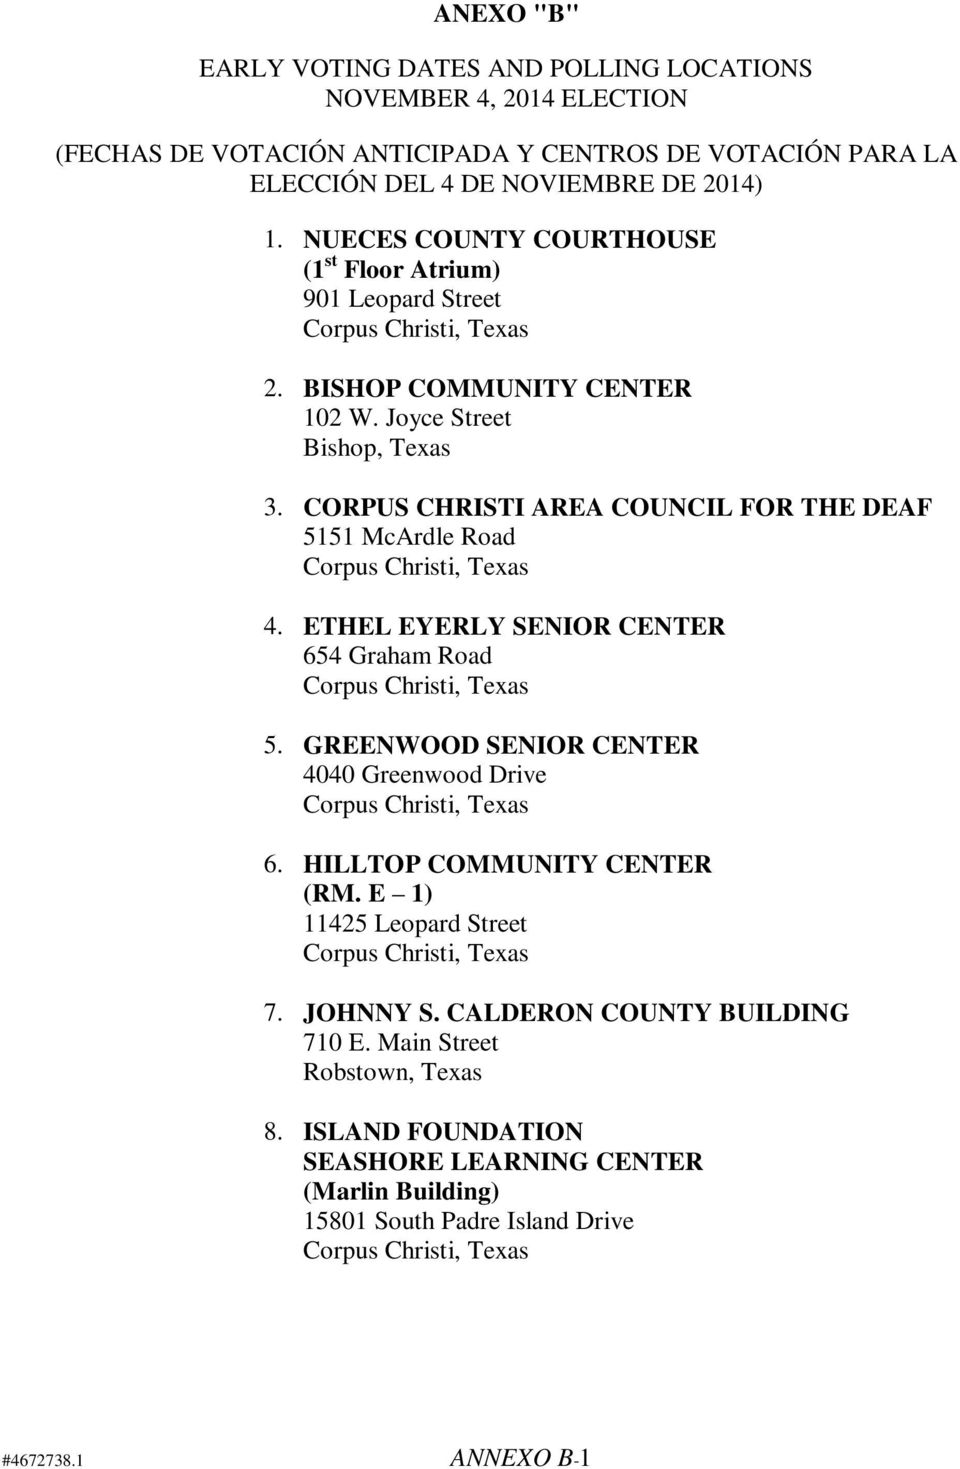 CORPUS CHRISTI AREA COUNCIL FOR THE DEAF 5151 McArdle Road 4. ETHEL EYERLY SENIOR CENTER 654 Graham Road 5. GREENWOOD SENIOR CENTER 4040 Greenwood Drive 6.